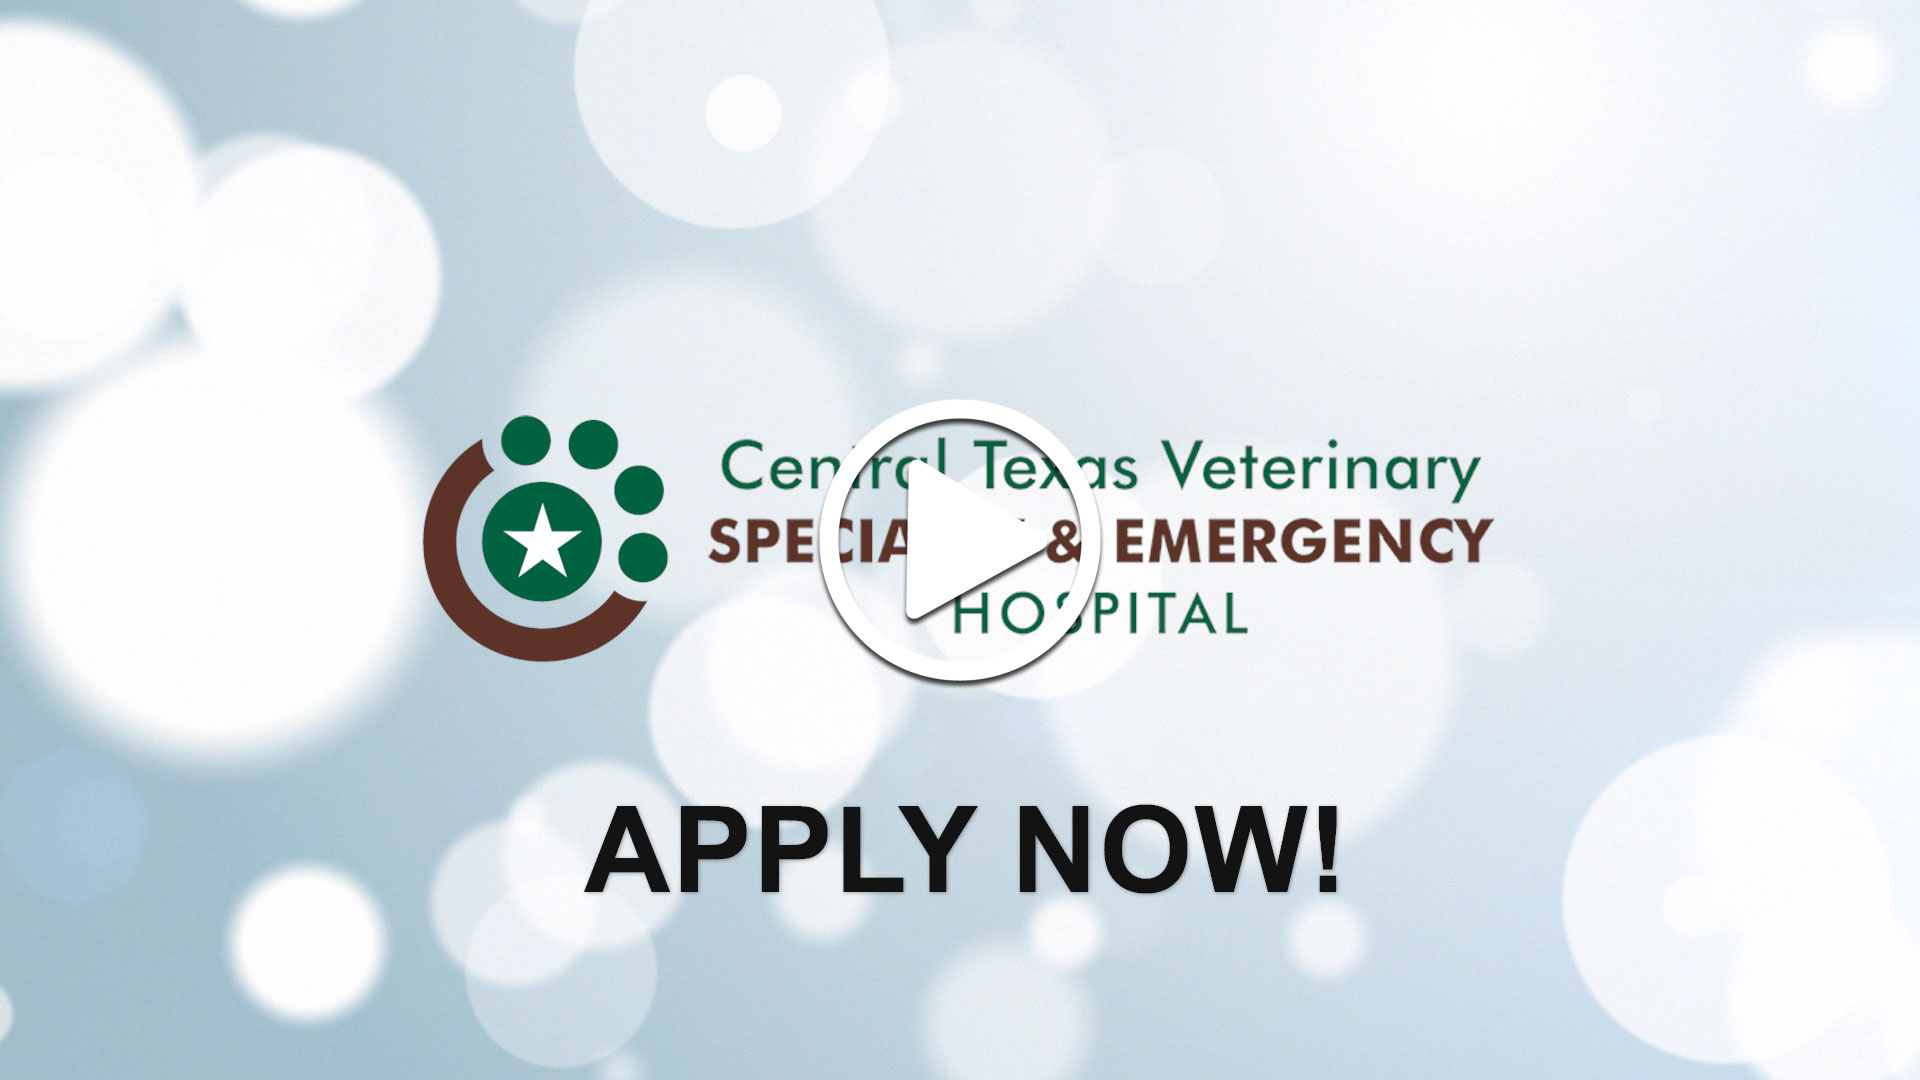 Watch our careers video for available job opening Emergency Veterinarian - Signing Bonus Offered in Austin, Texas